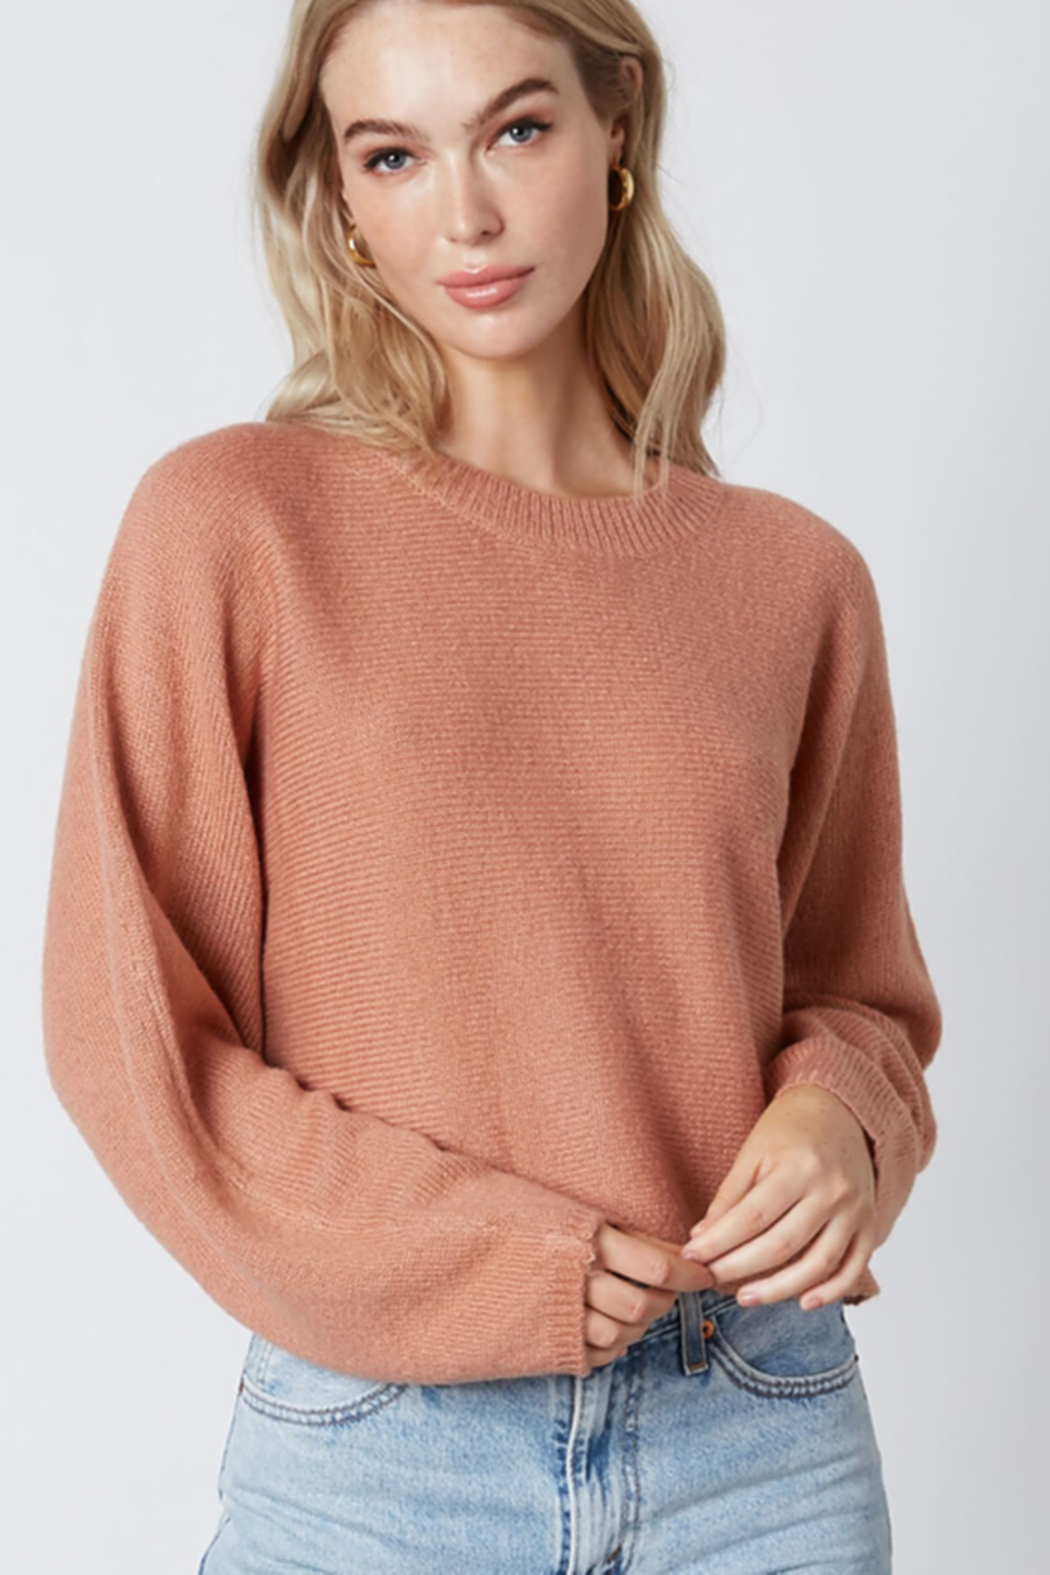 Cotton Candy  Crew Neck Sweater - Main Image